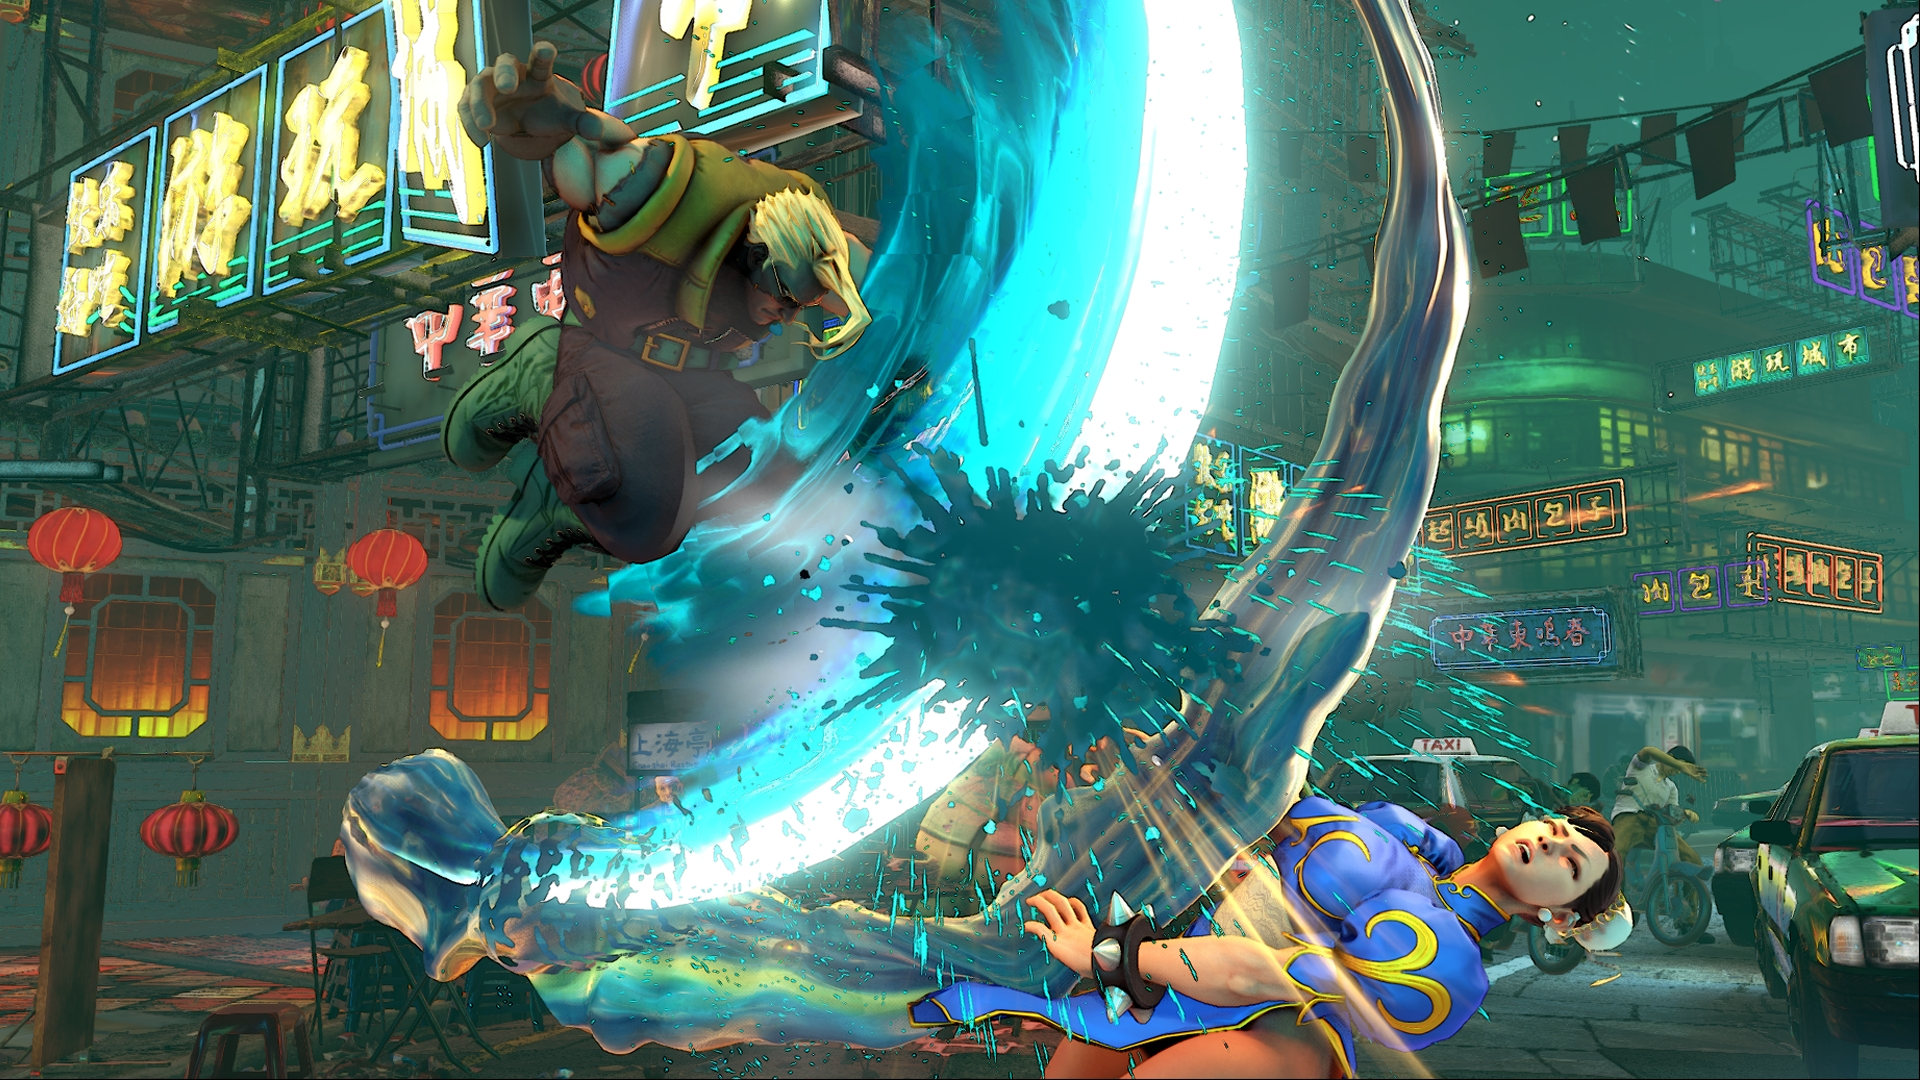 Street Fighter 5 online beta coming to PC and PS4 - Polygon